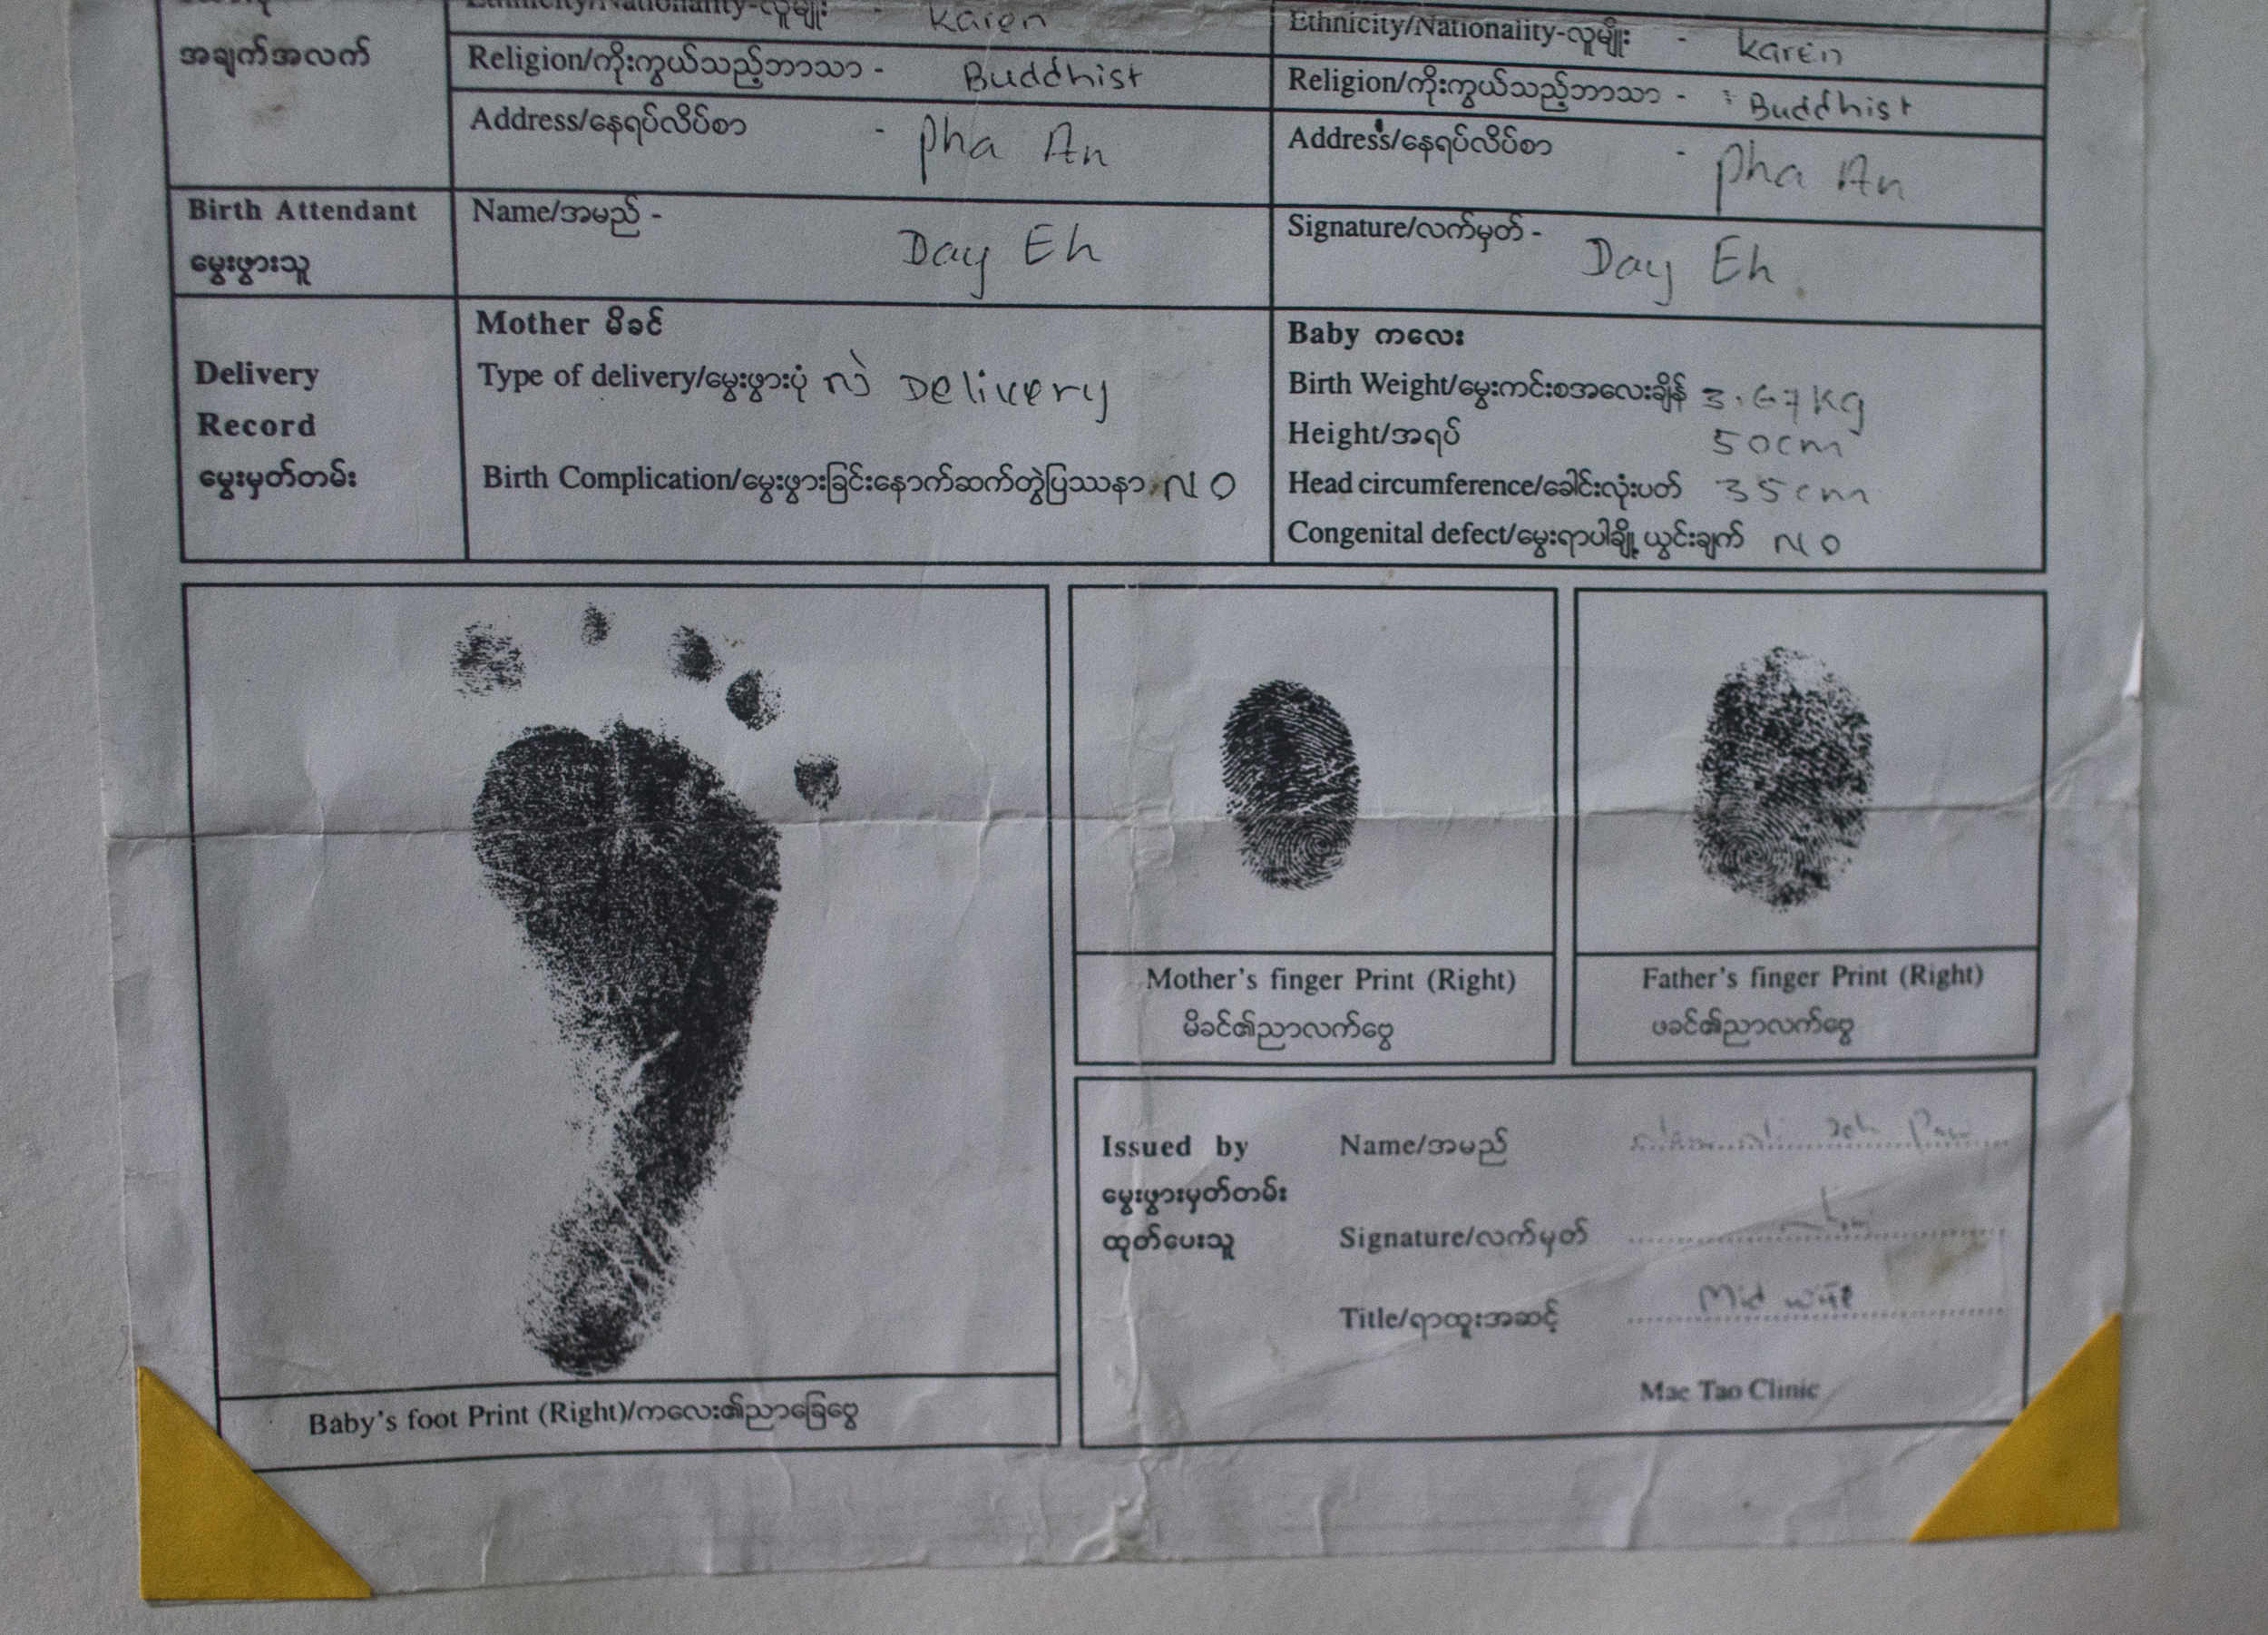 Burmese Family Registers Their Child For A Birth Certificate As Part